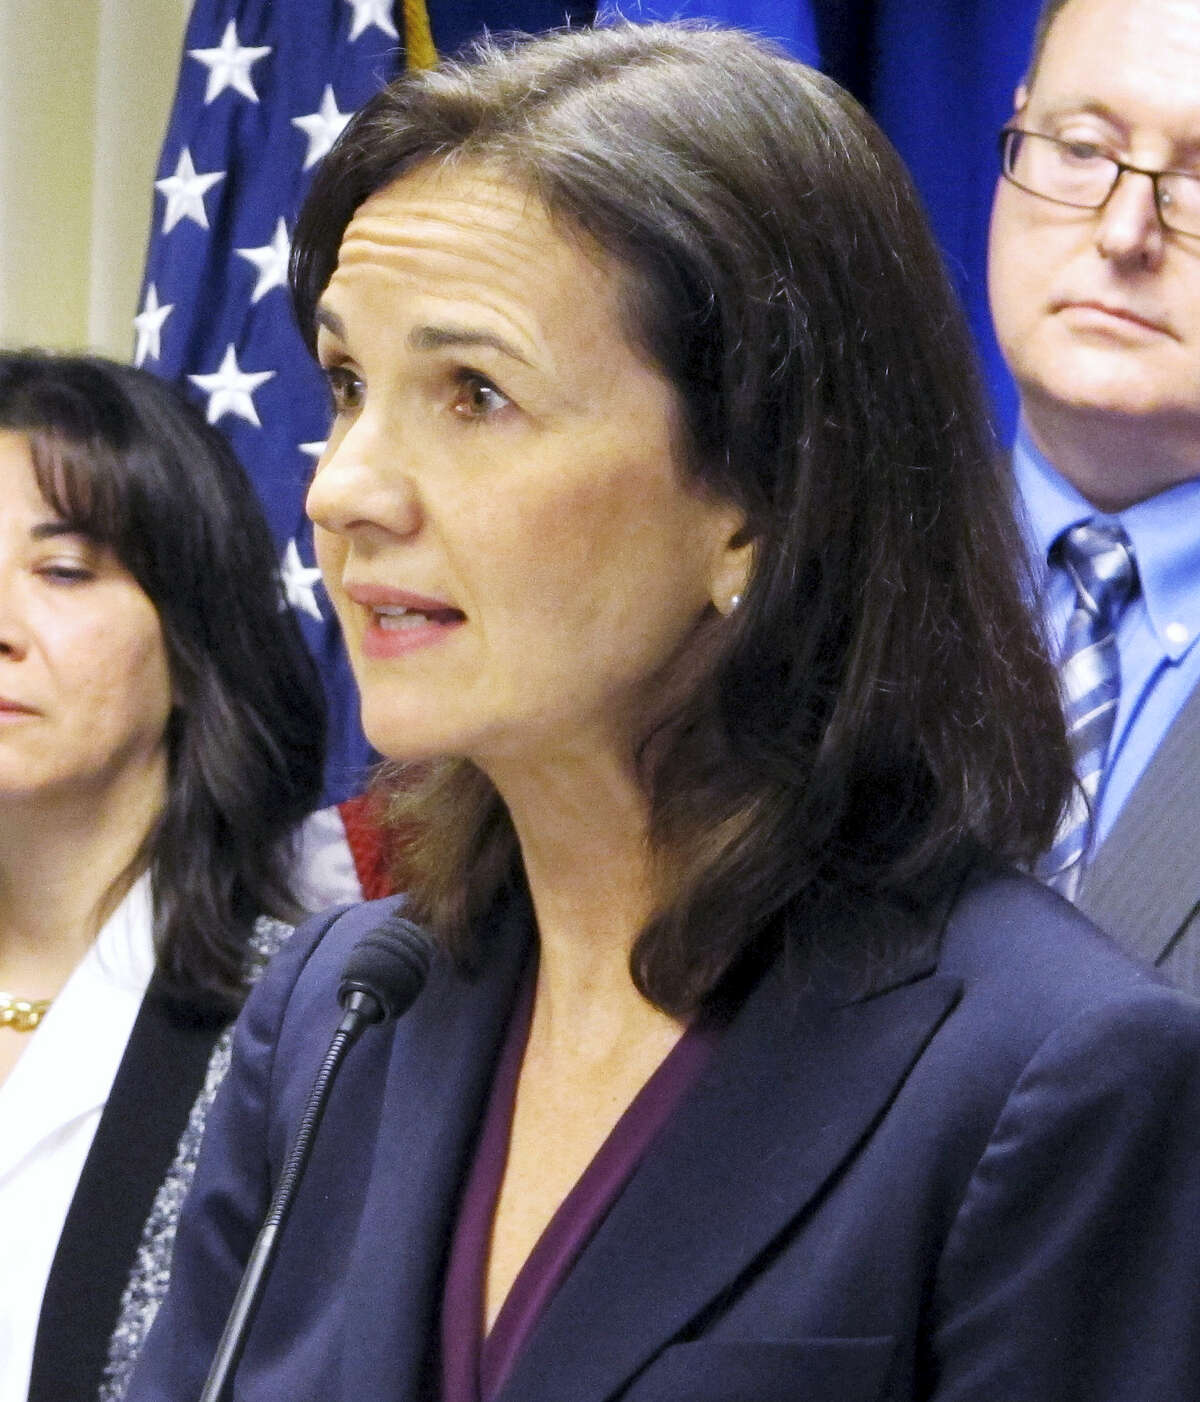 In this file photo, Deirdre Daly, U.S. attorney for Connecticut, stands with other federal officials while announcing a new public corruption task force in New Haven, Conn. Daly is facing an uncertain job future as the presidency changes hands from one political party to another when Donald Trump is sworn into office in January 2017. She has been the top federal prosecutor in the state since 2014, after being nominated by outgoing Democratic President Barack Obama.